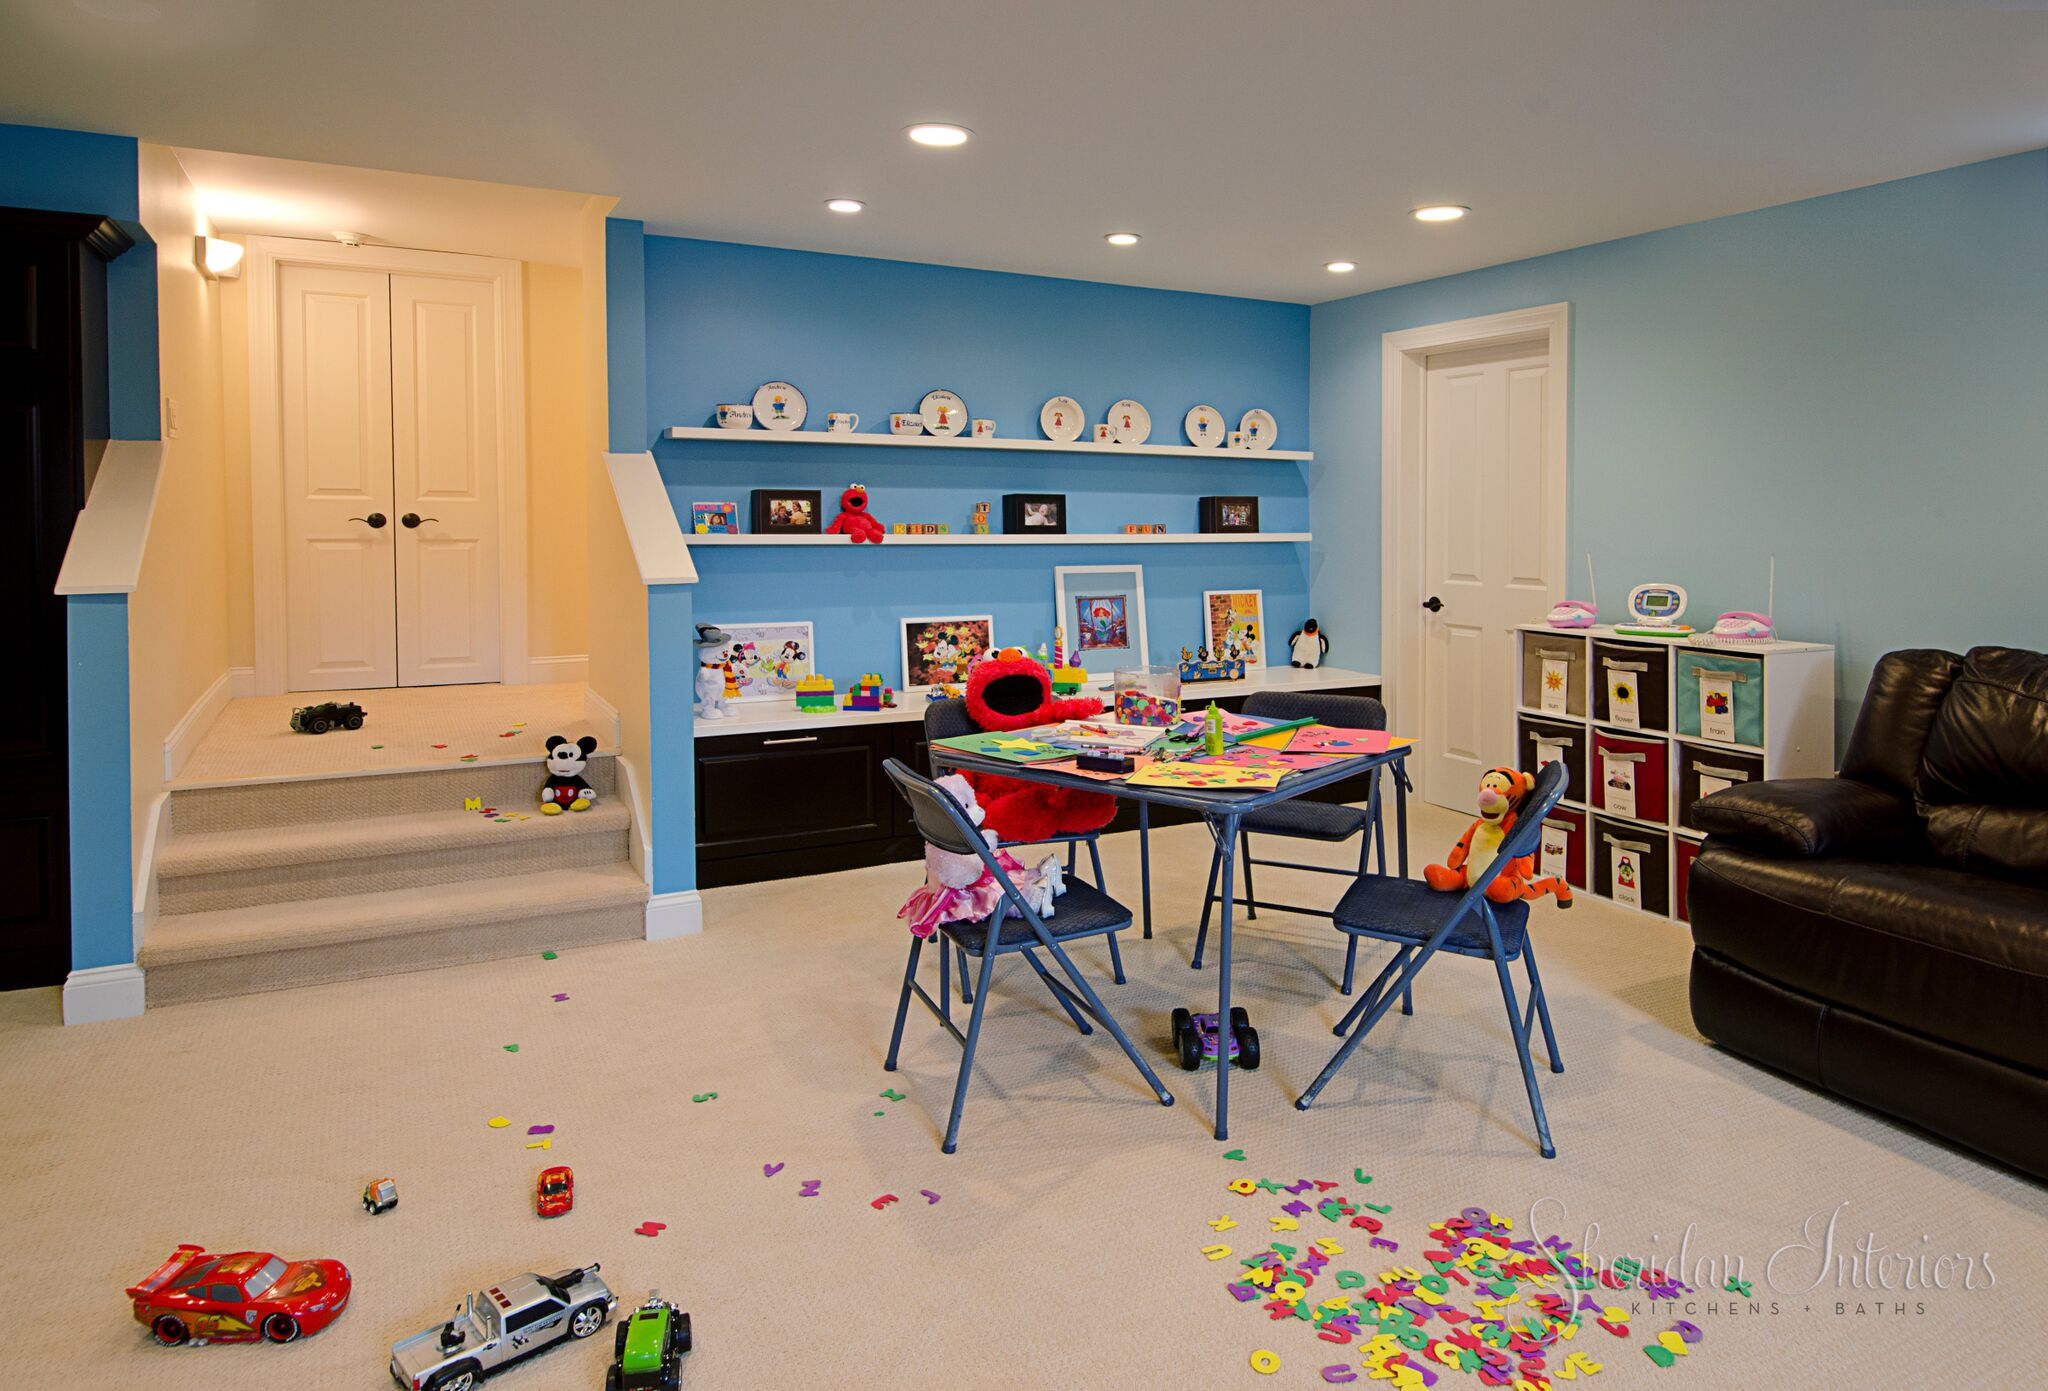 Kid's Playroom with Built-in Storage - Sheridan Interiors, sheridan interiors kitchens and baths, interior designer cornwall, interior desinger ottawa